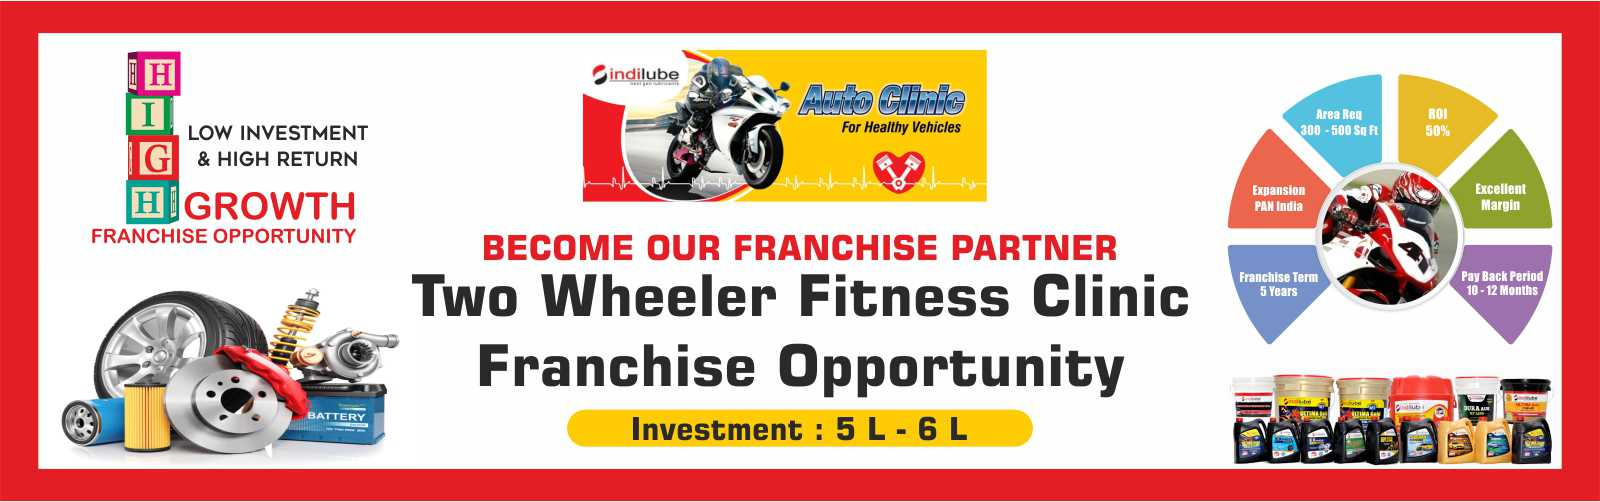 admin/uploads/brand_registration/Indilube Auto Clinic ( Fastest Growing Two Wheeler Fitness Clinic  )